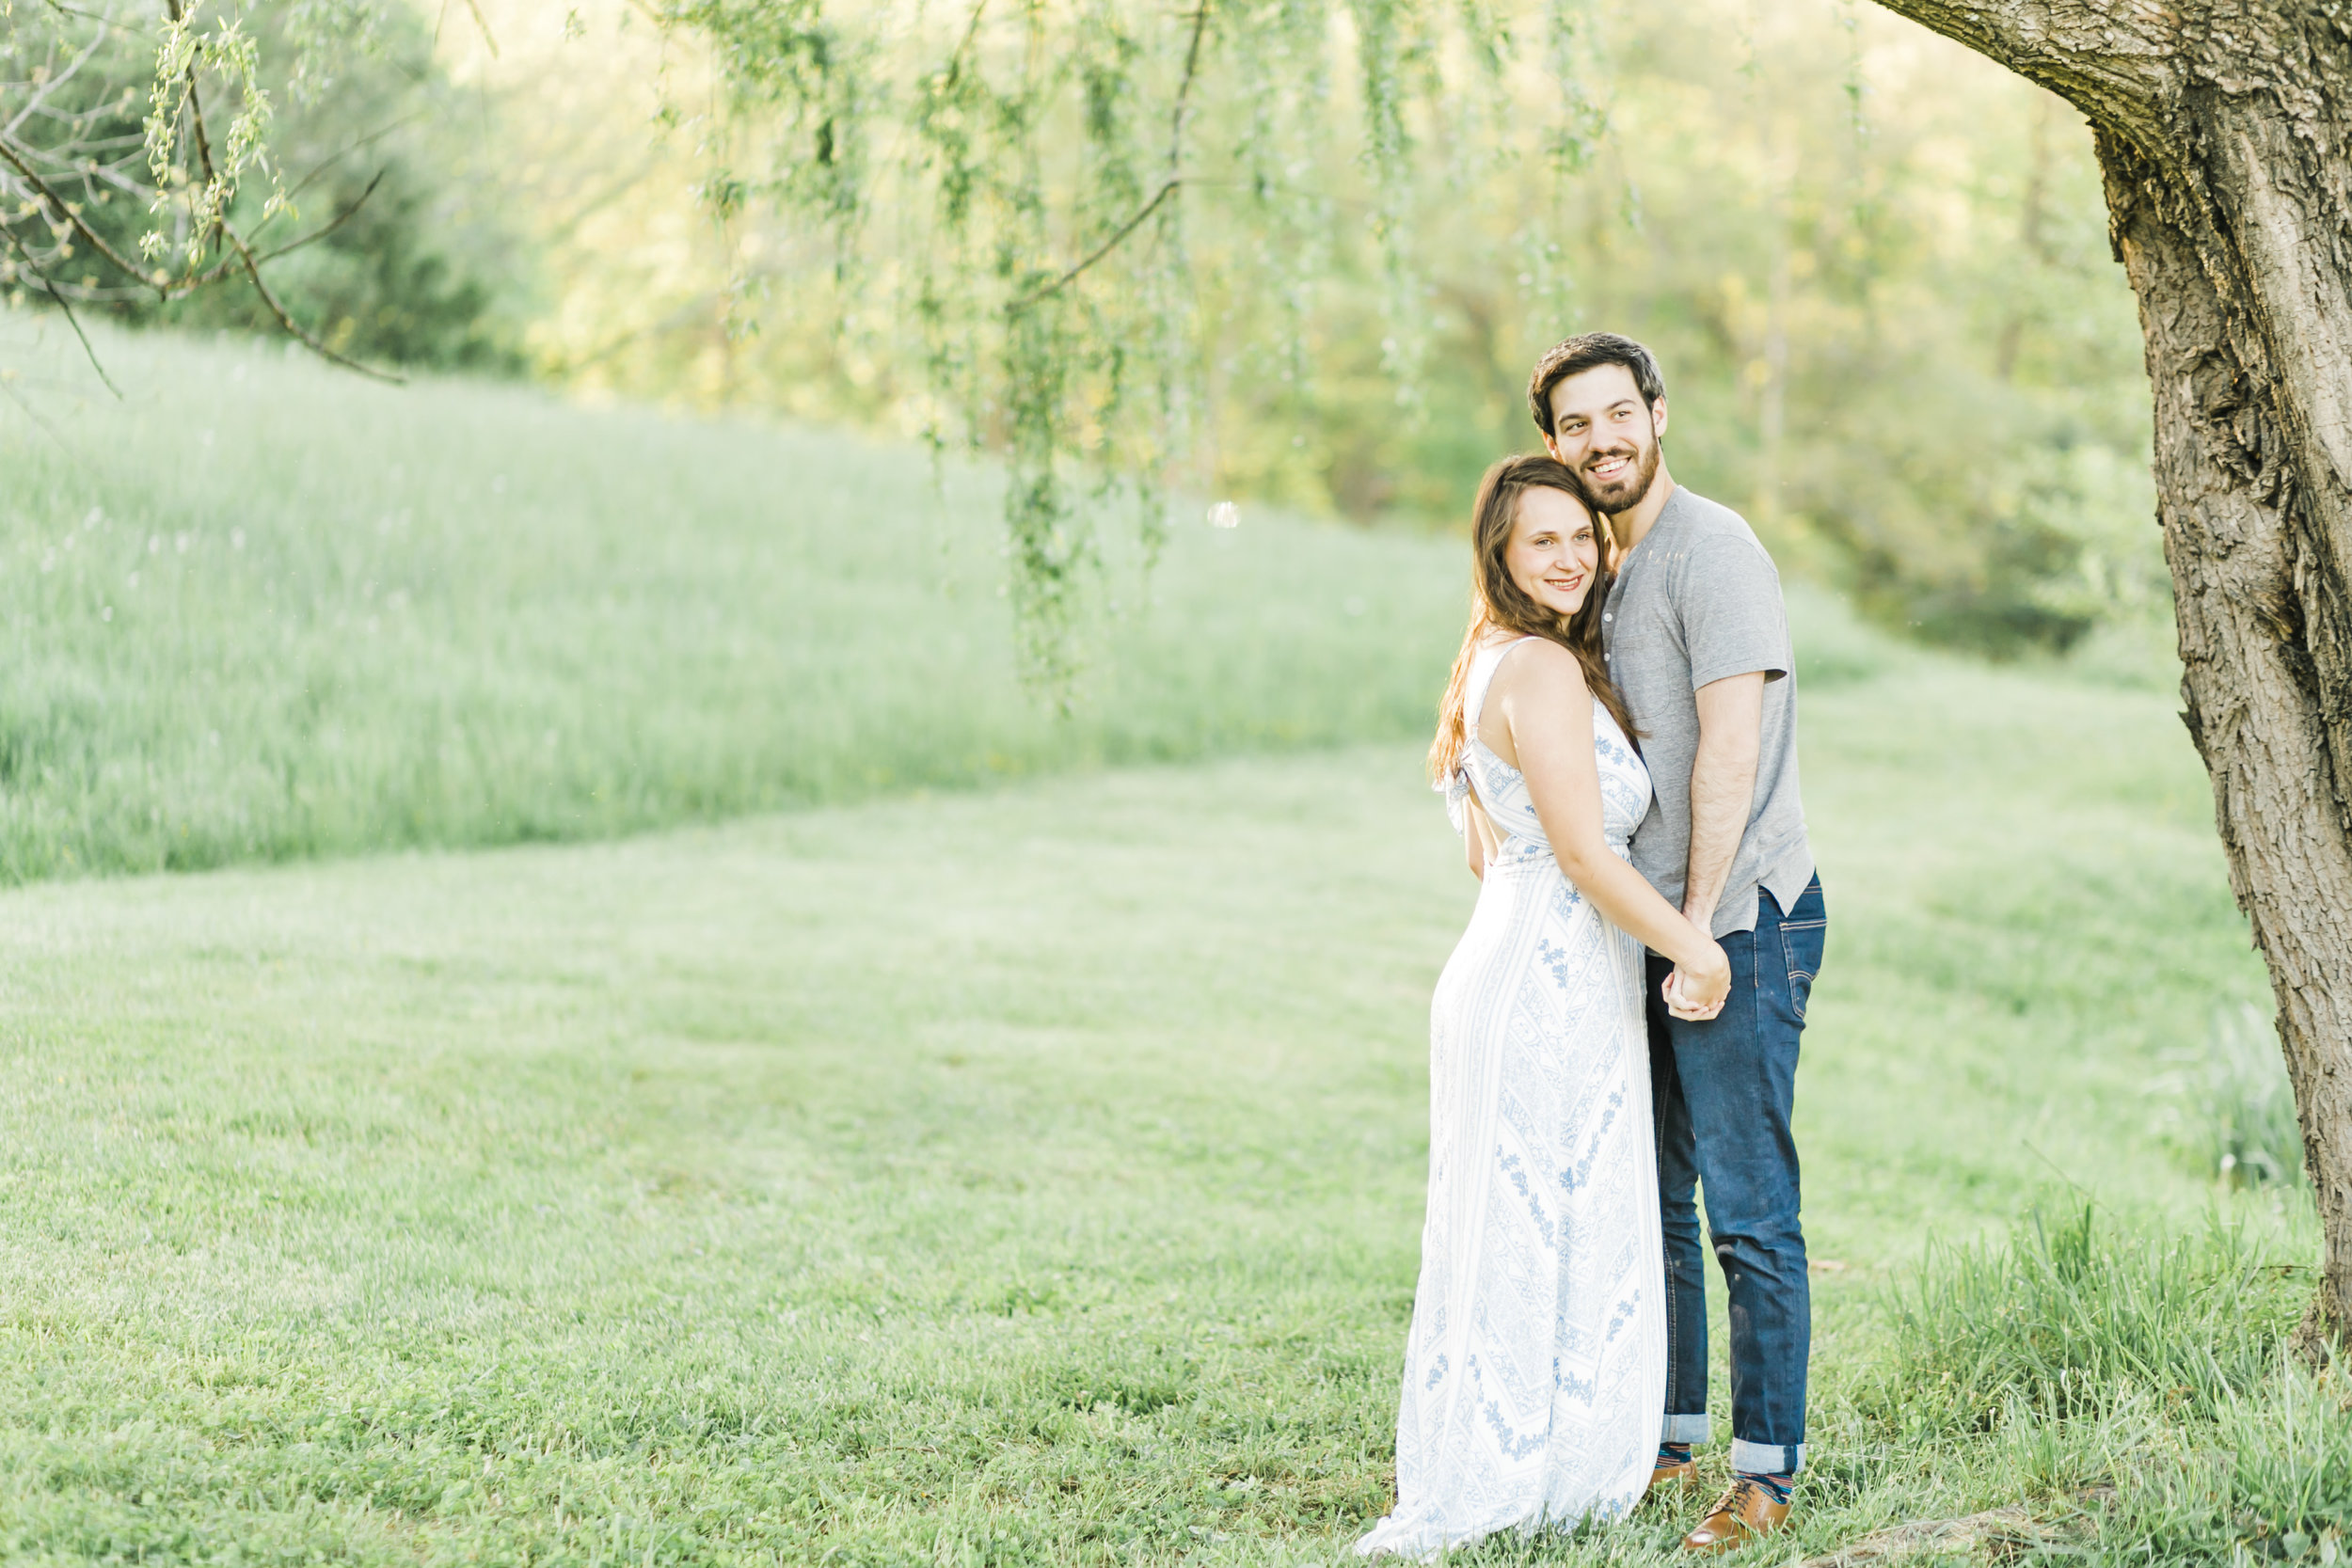 Chelsea&AndrewEngagement018.jpg